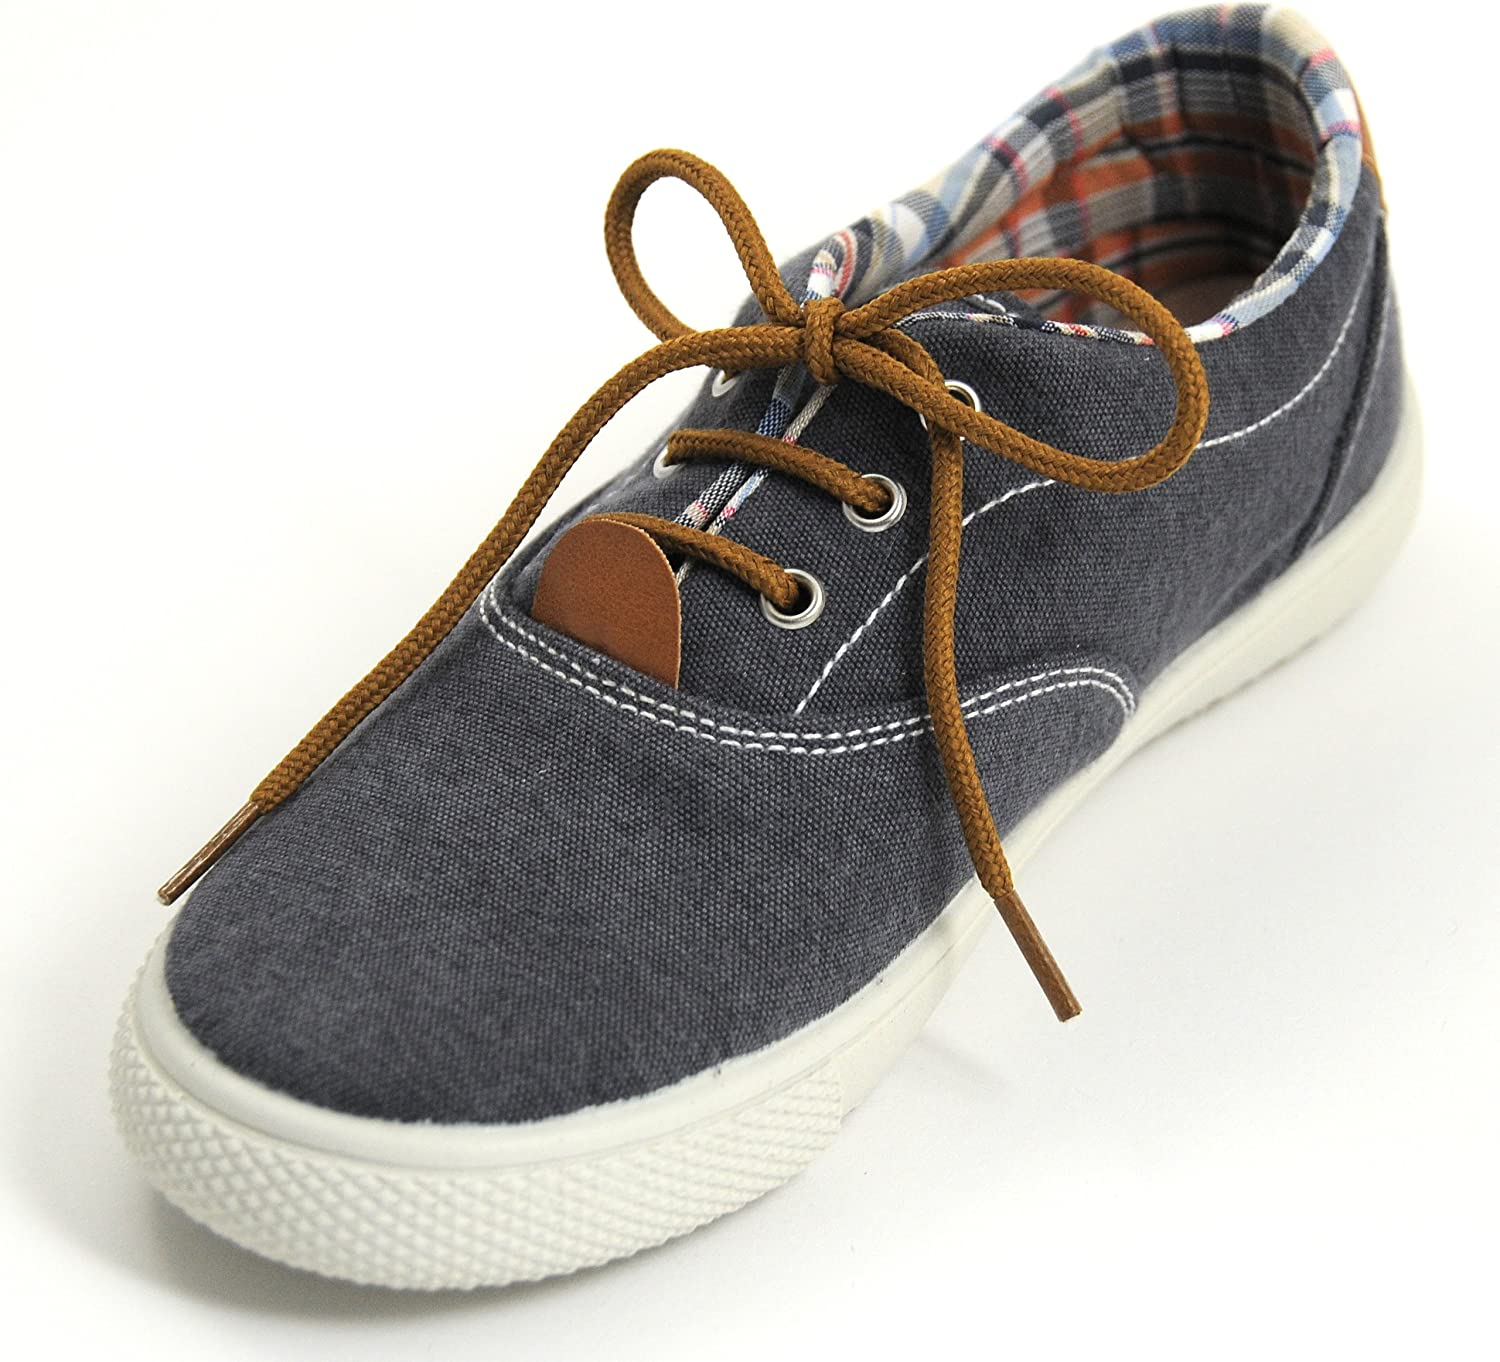 Vulladi SAR Fashion Sneakers Boys Navy Blue,Lace-up and Leather Insole